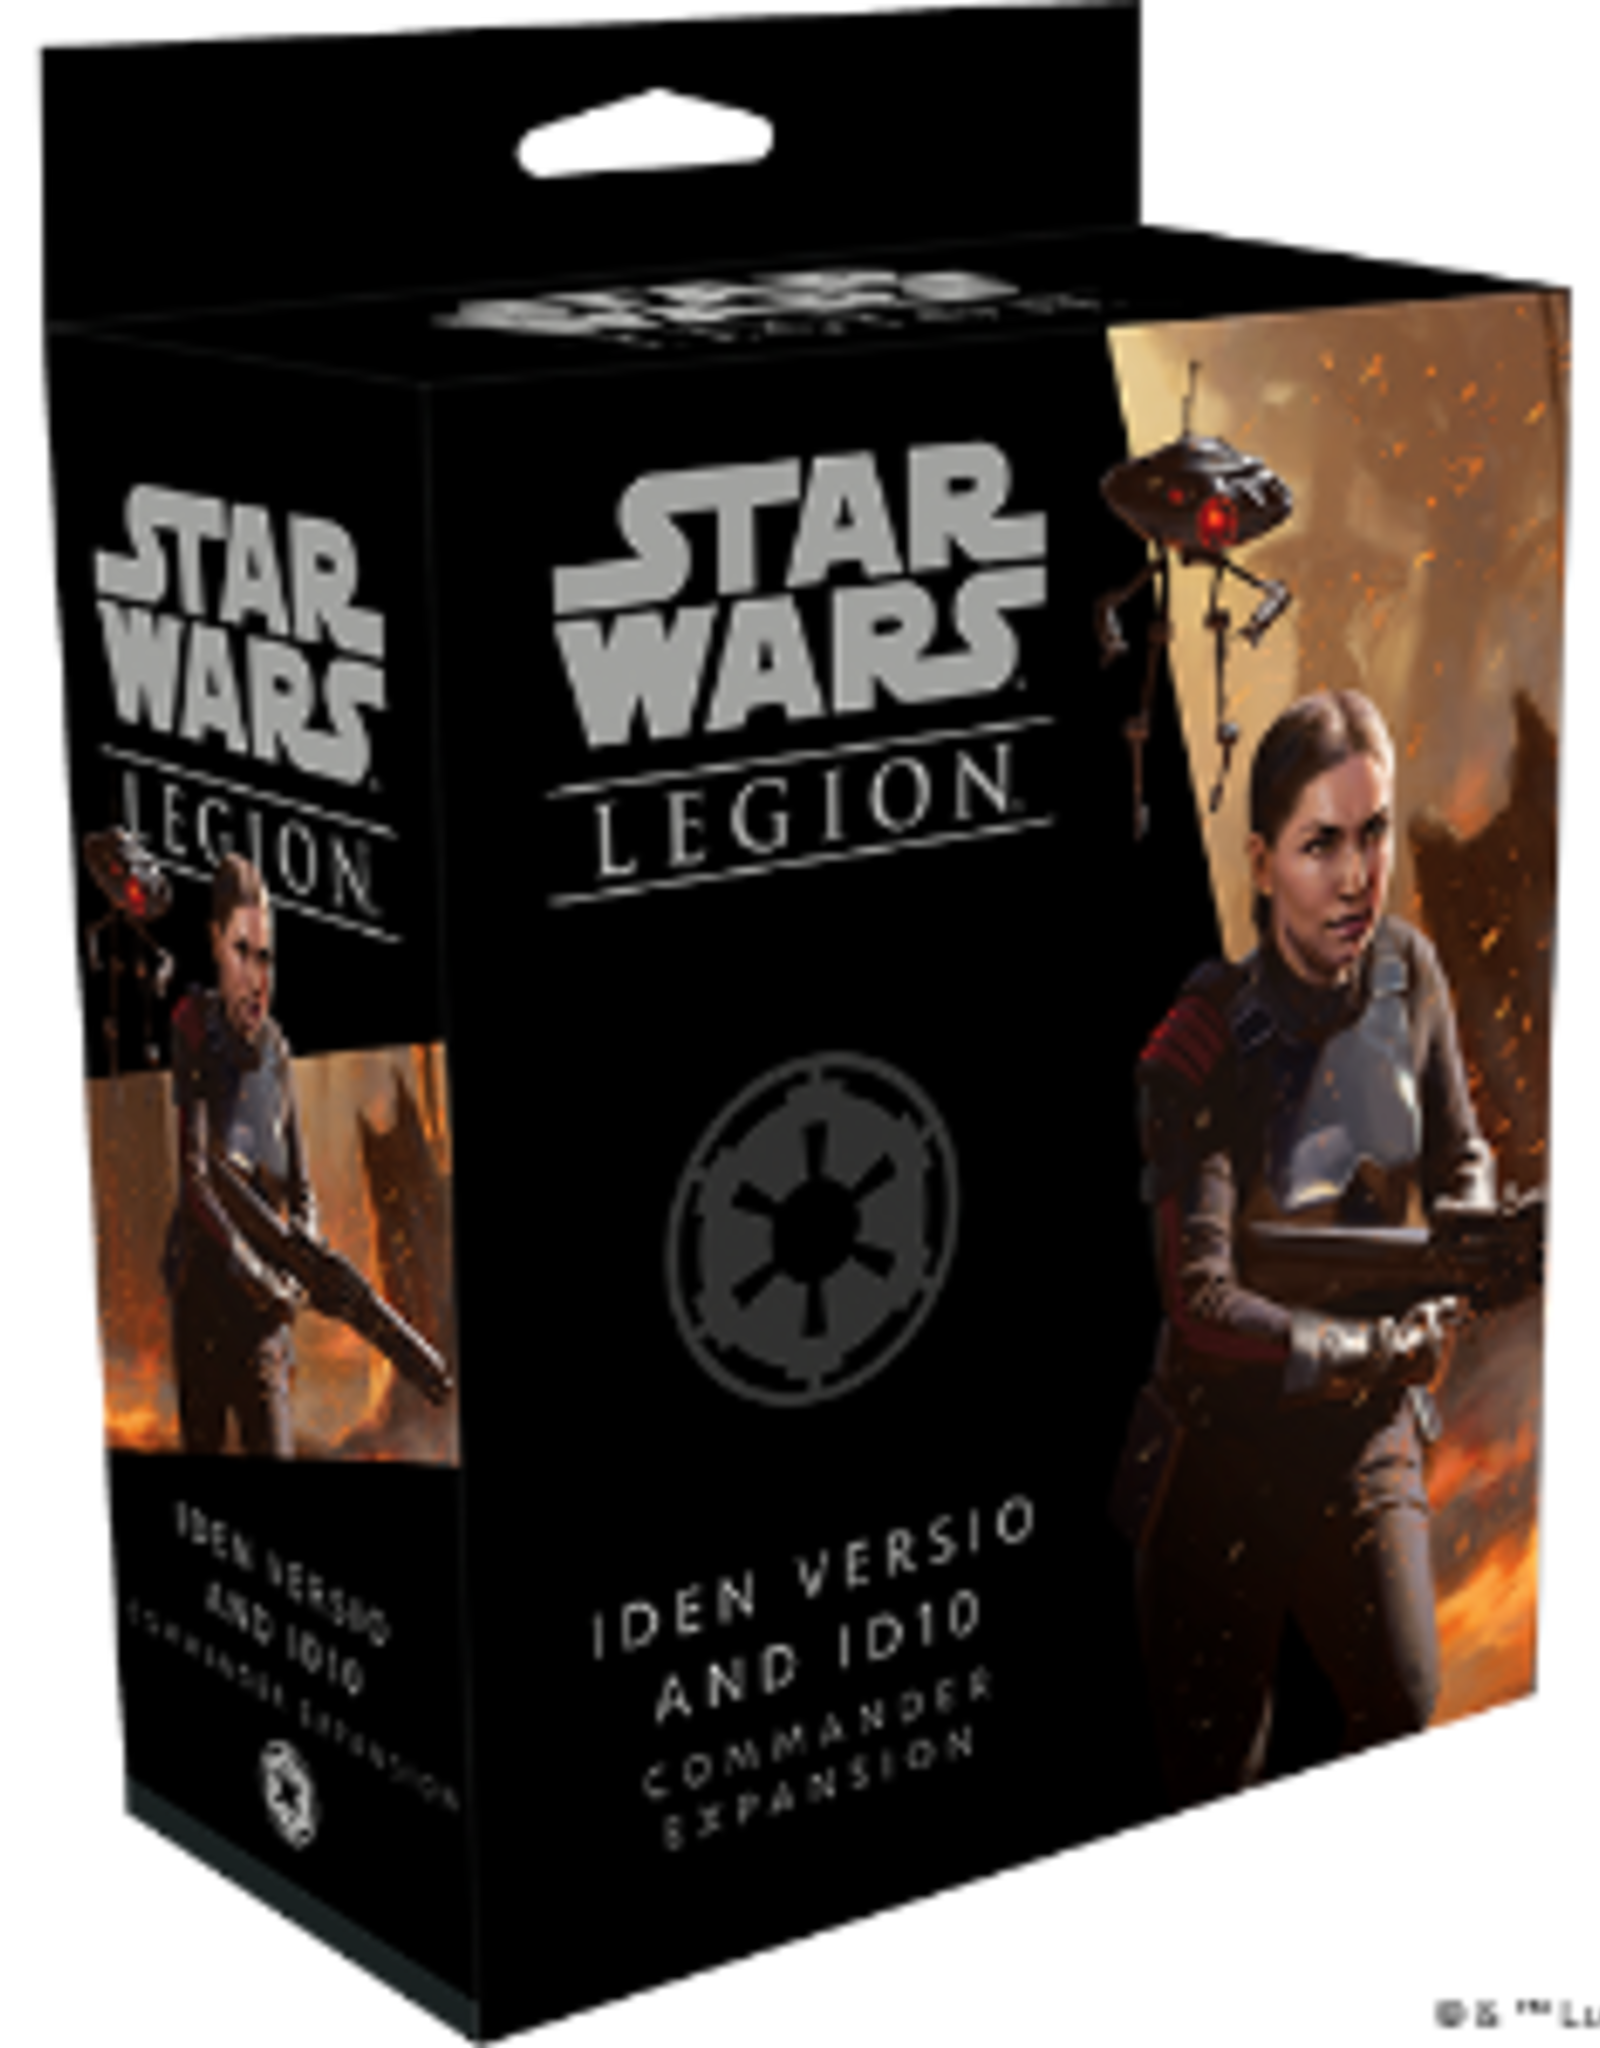 Iden Veriso and ID10 Commander Expansion